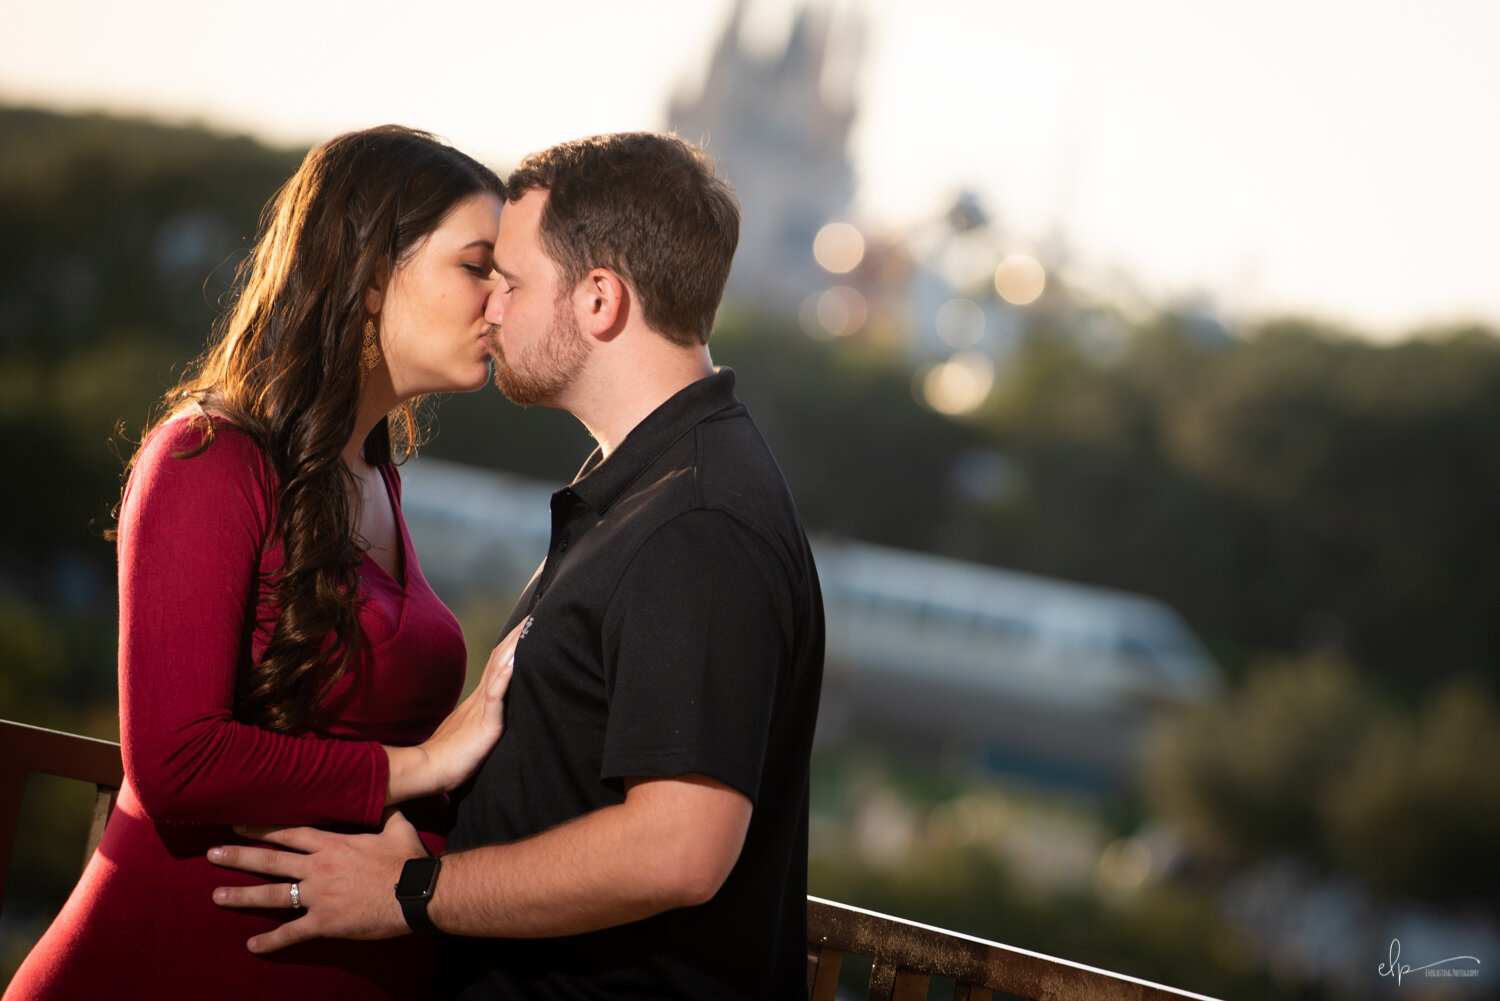 Maternity Photo Session At Disney's Contemporary